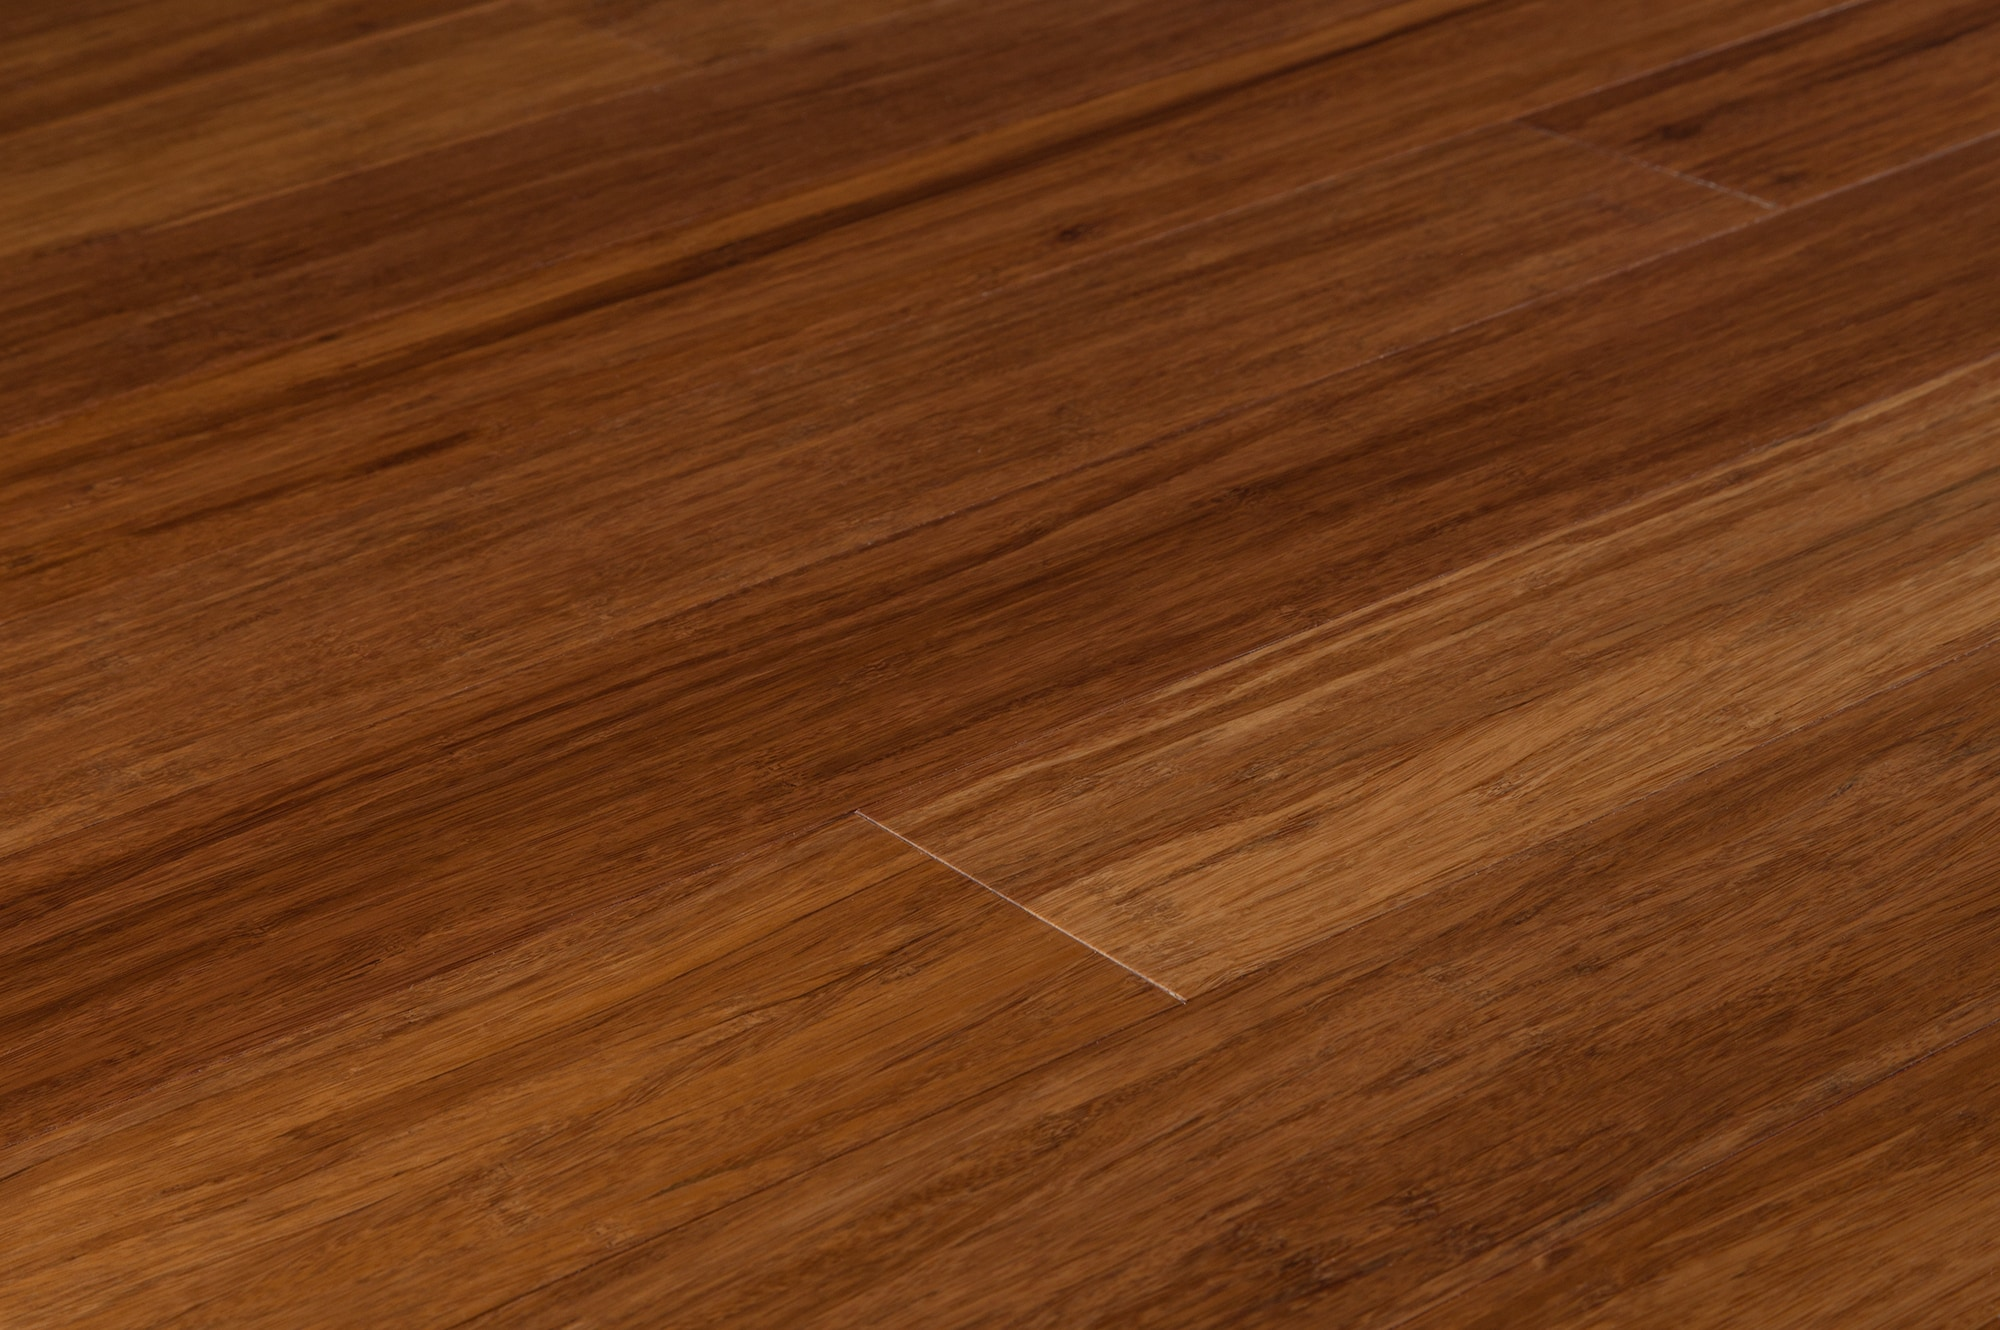 Strand woven bamboo flooring vs hardwood hand scraped for Strand woven bamboo flooring pros and cons